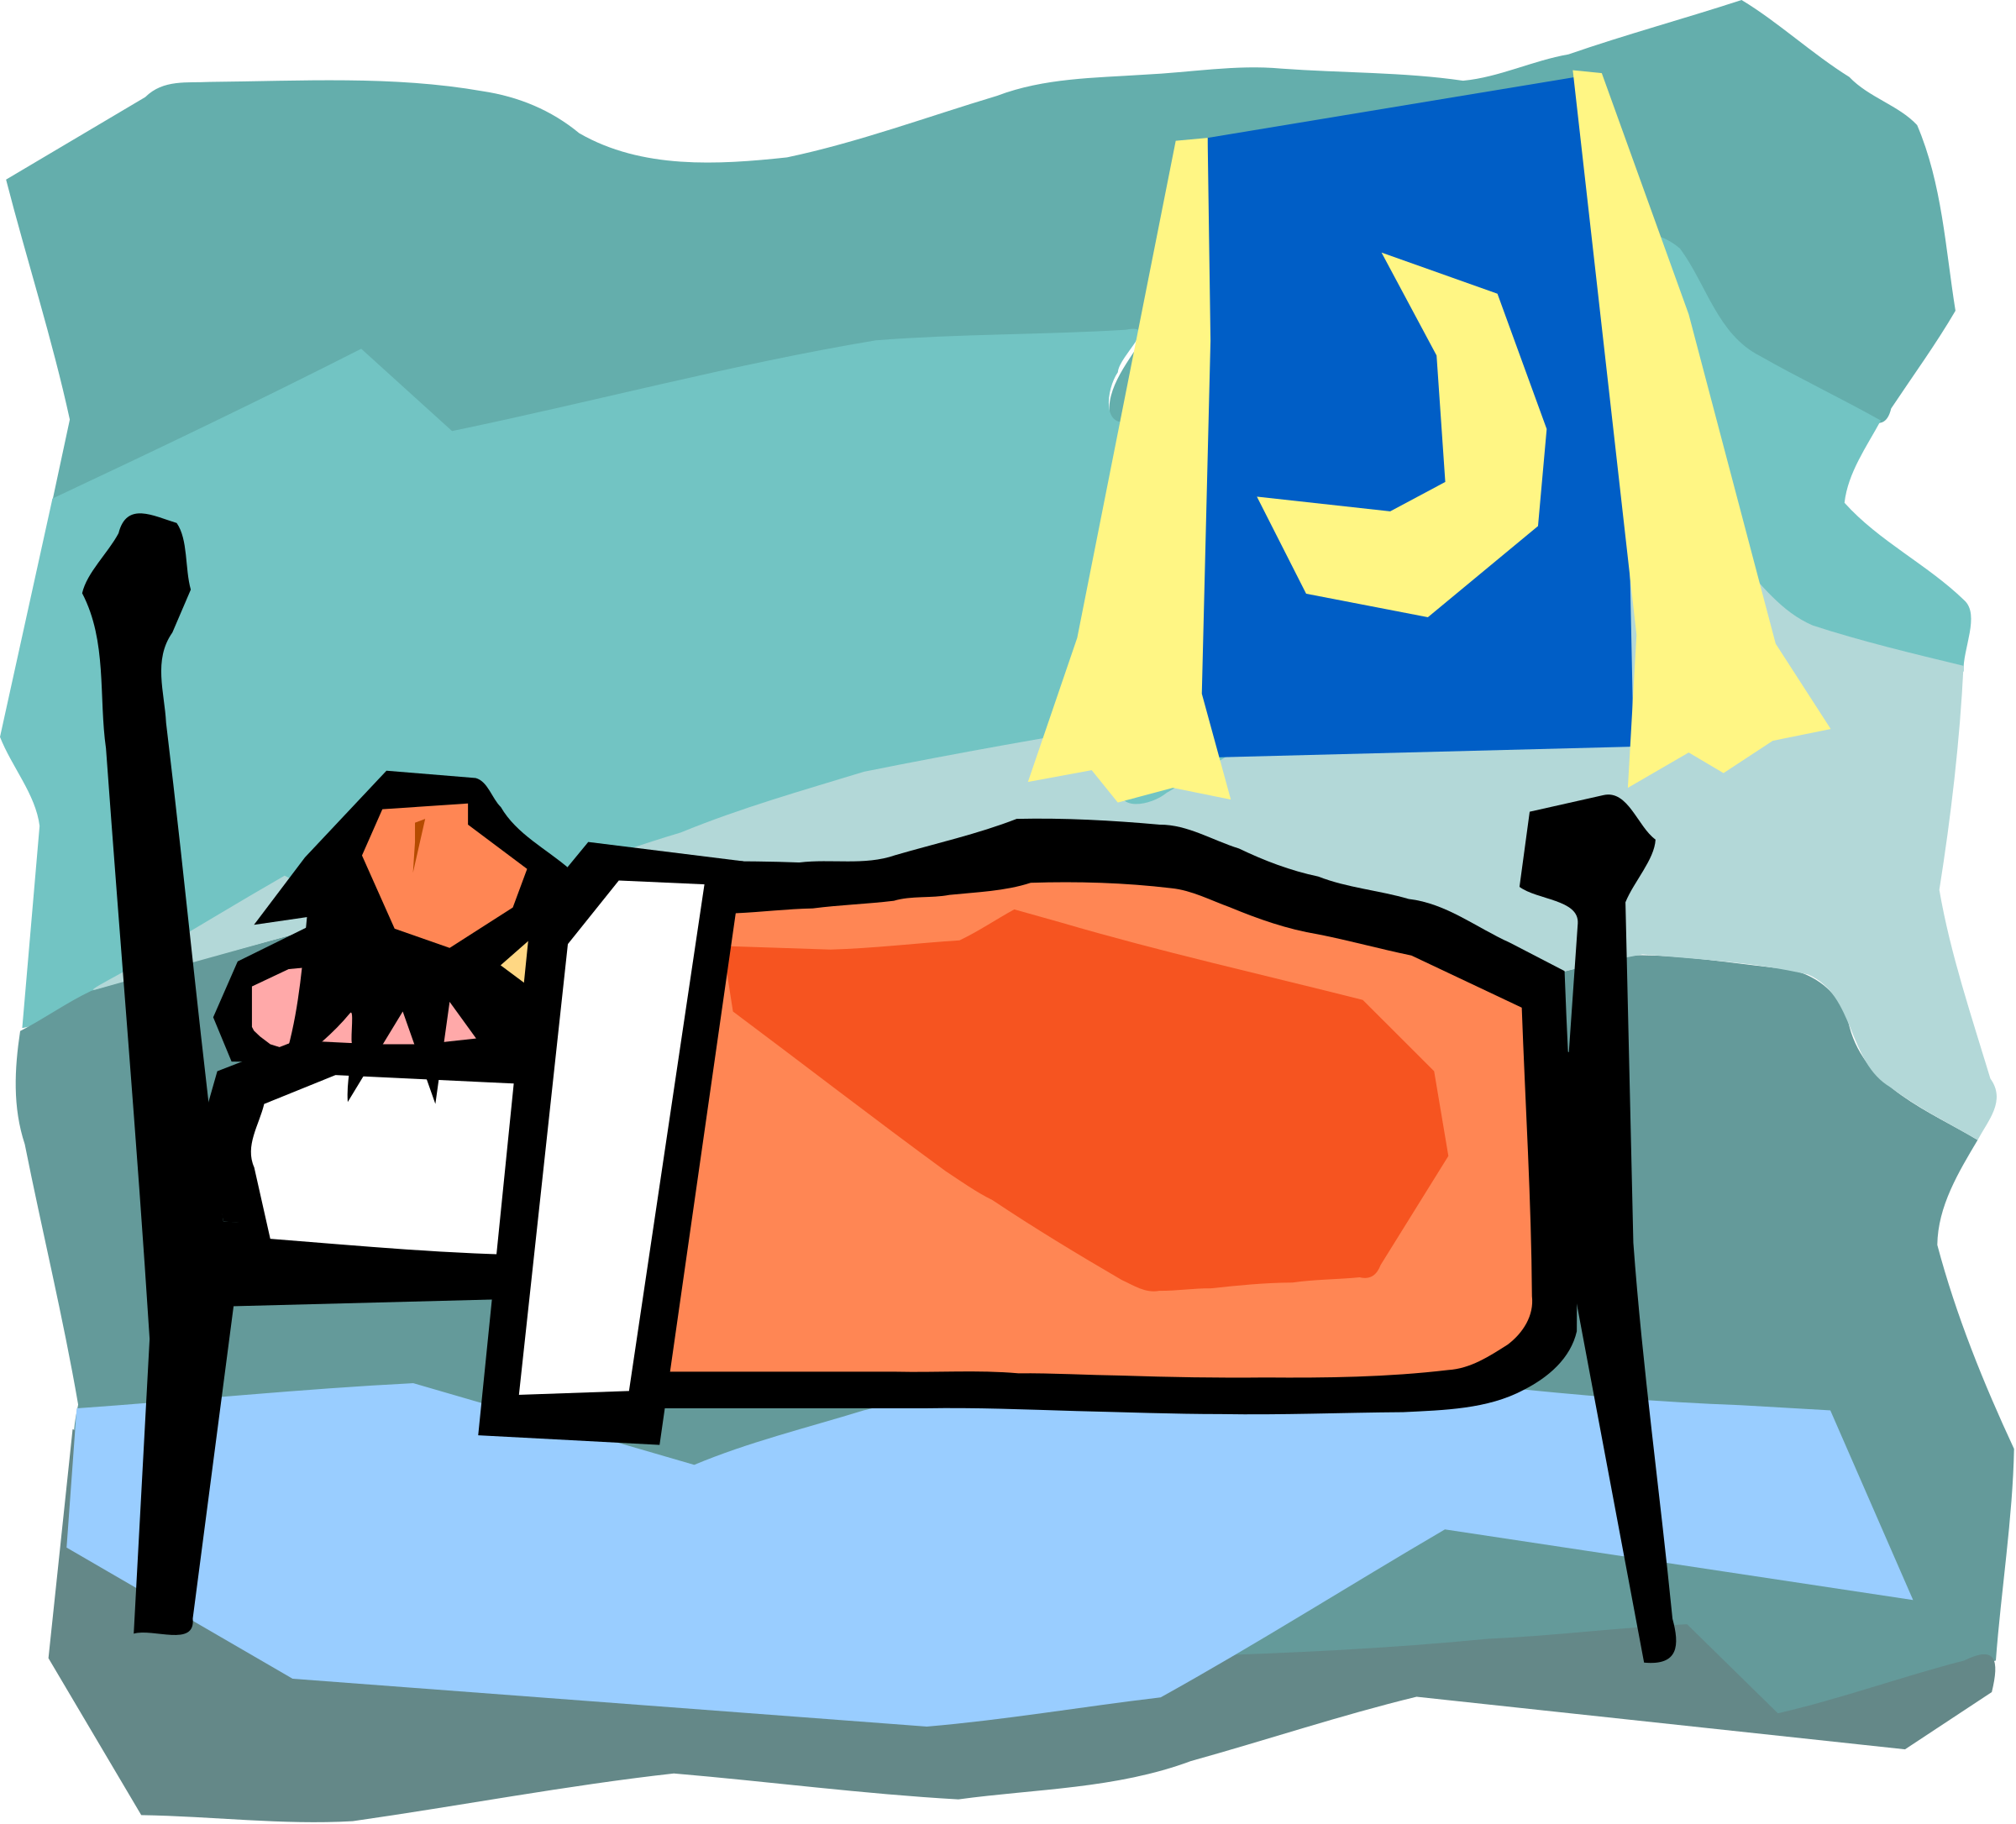 Dreaming clipart sleep study. A person big image